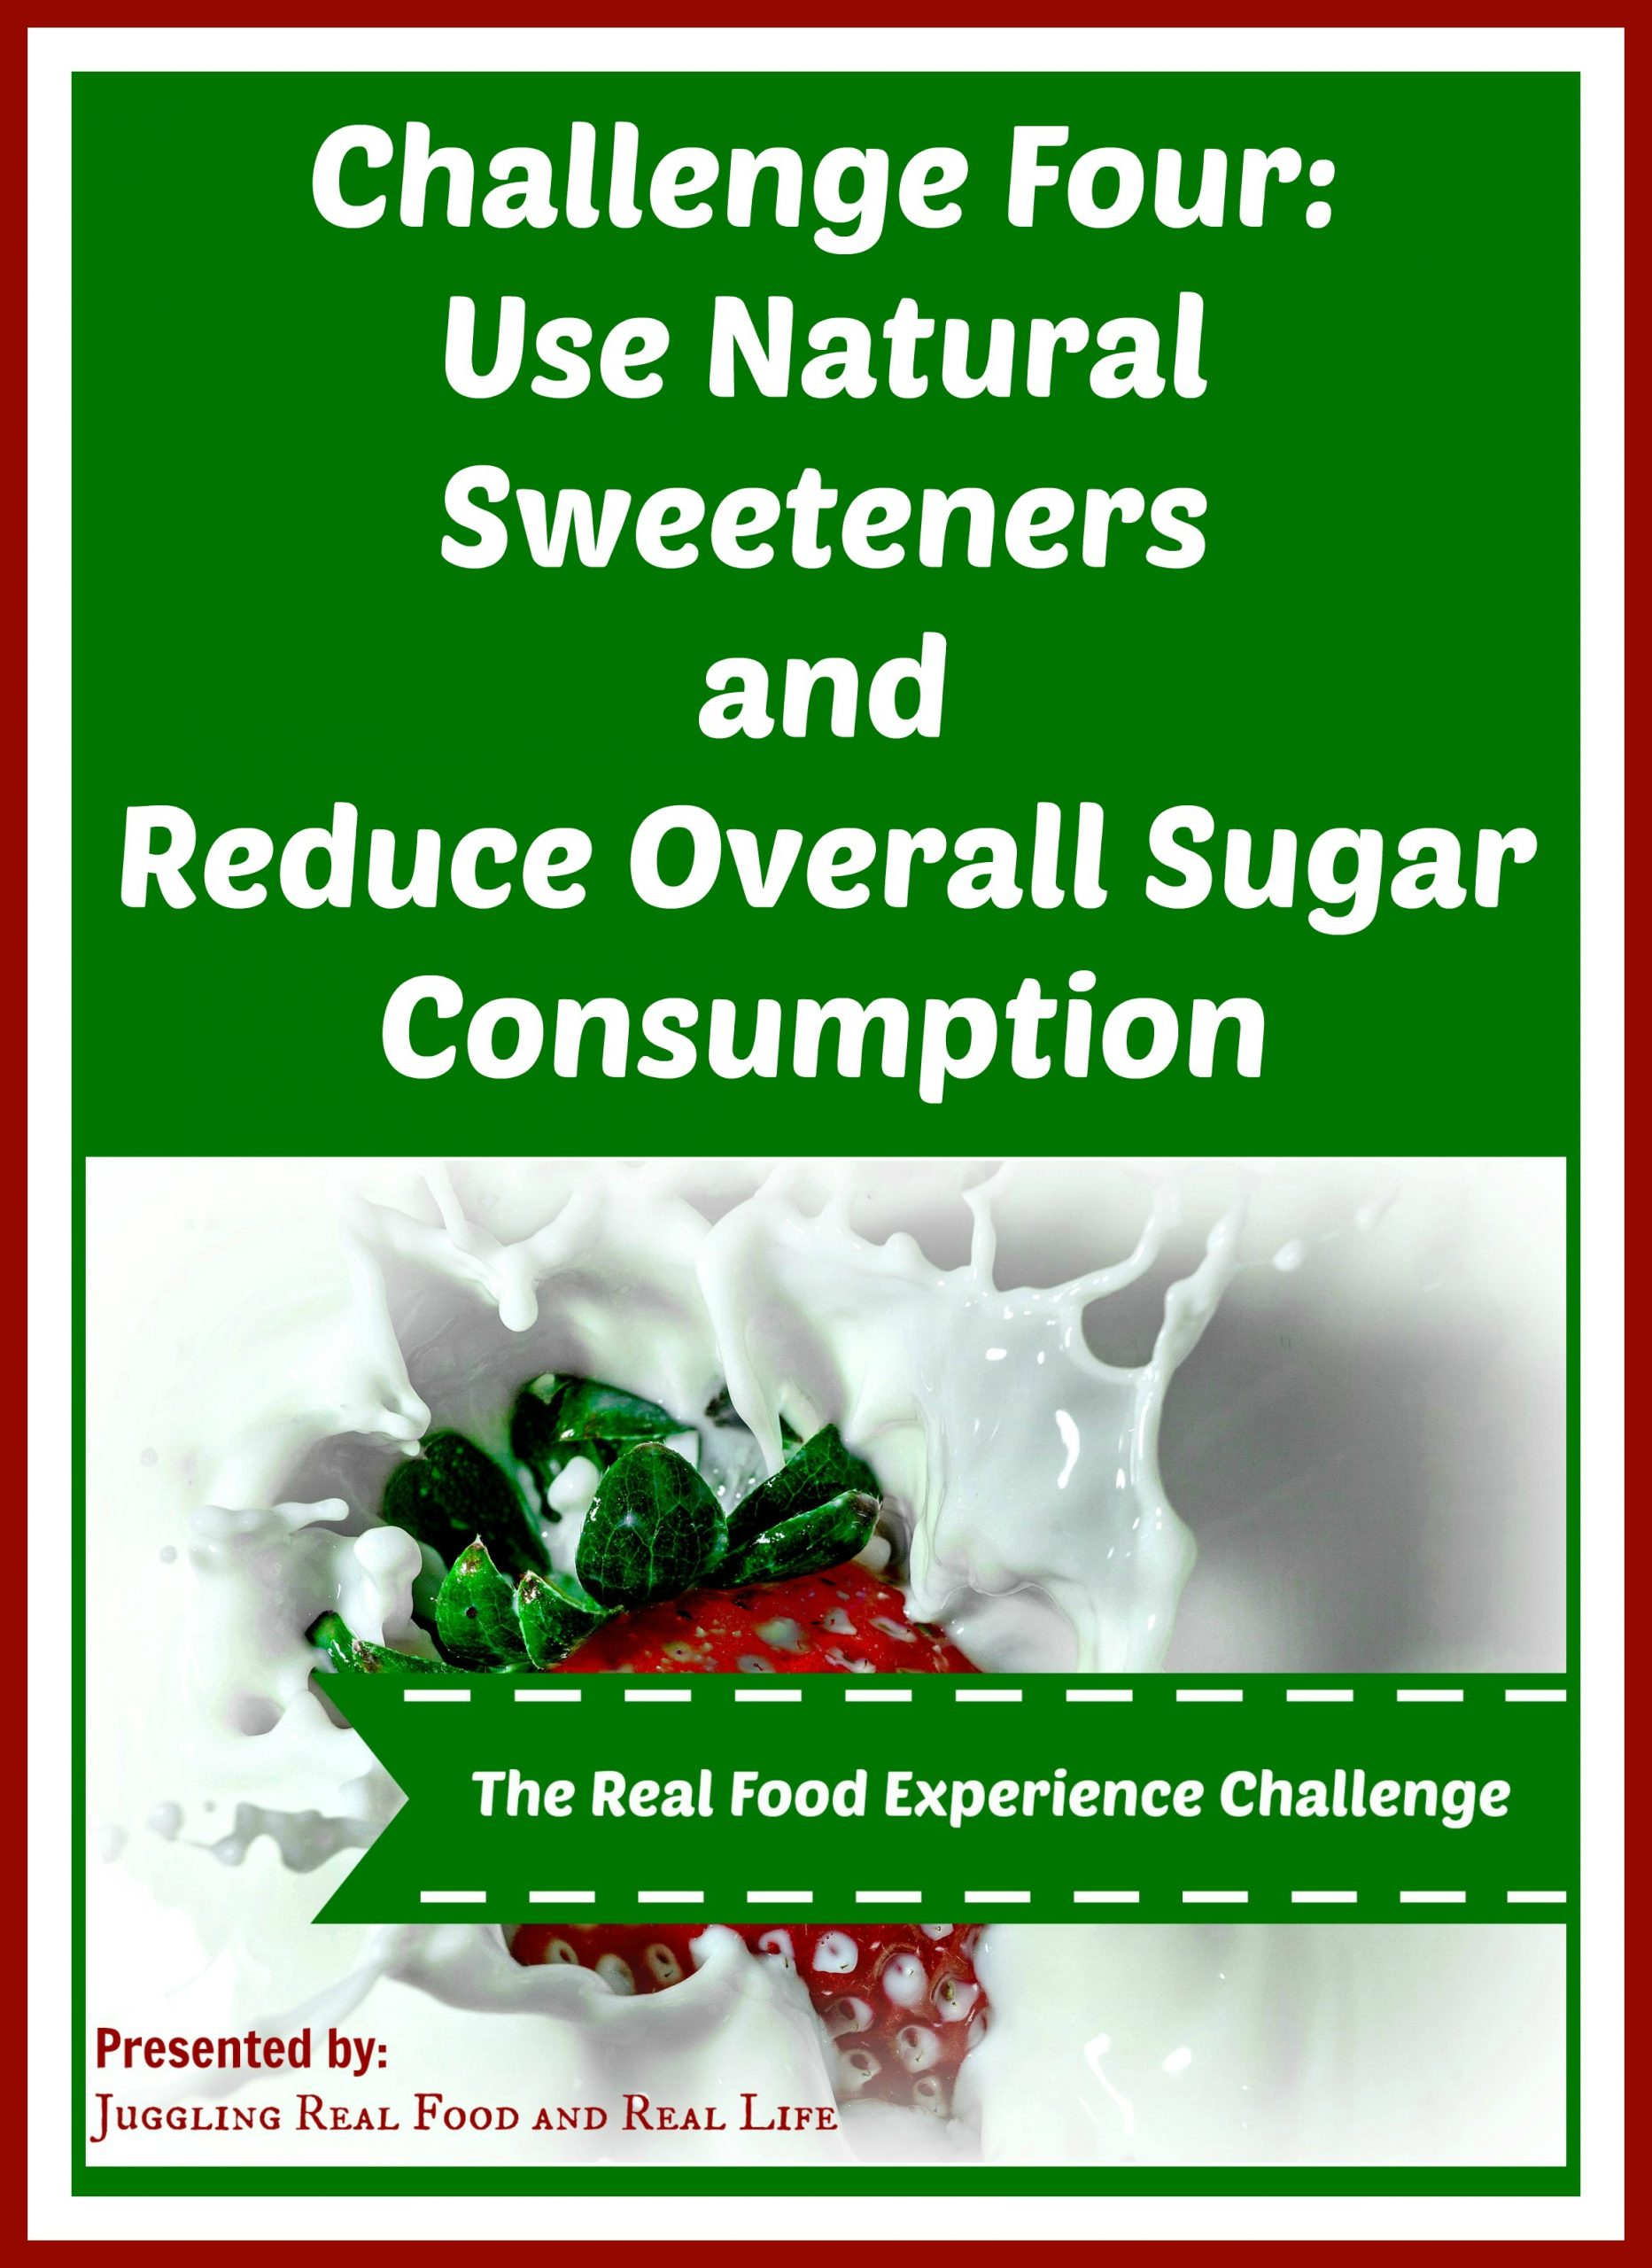 The Real Food Experience Challenge: Use Natural Sweeteners and Reduce Overall Sugar Consumption